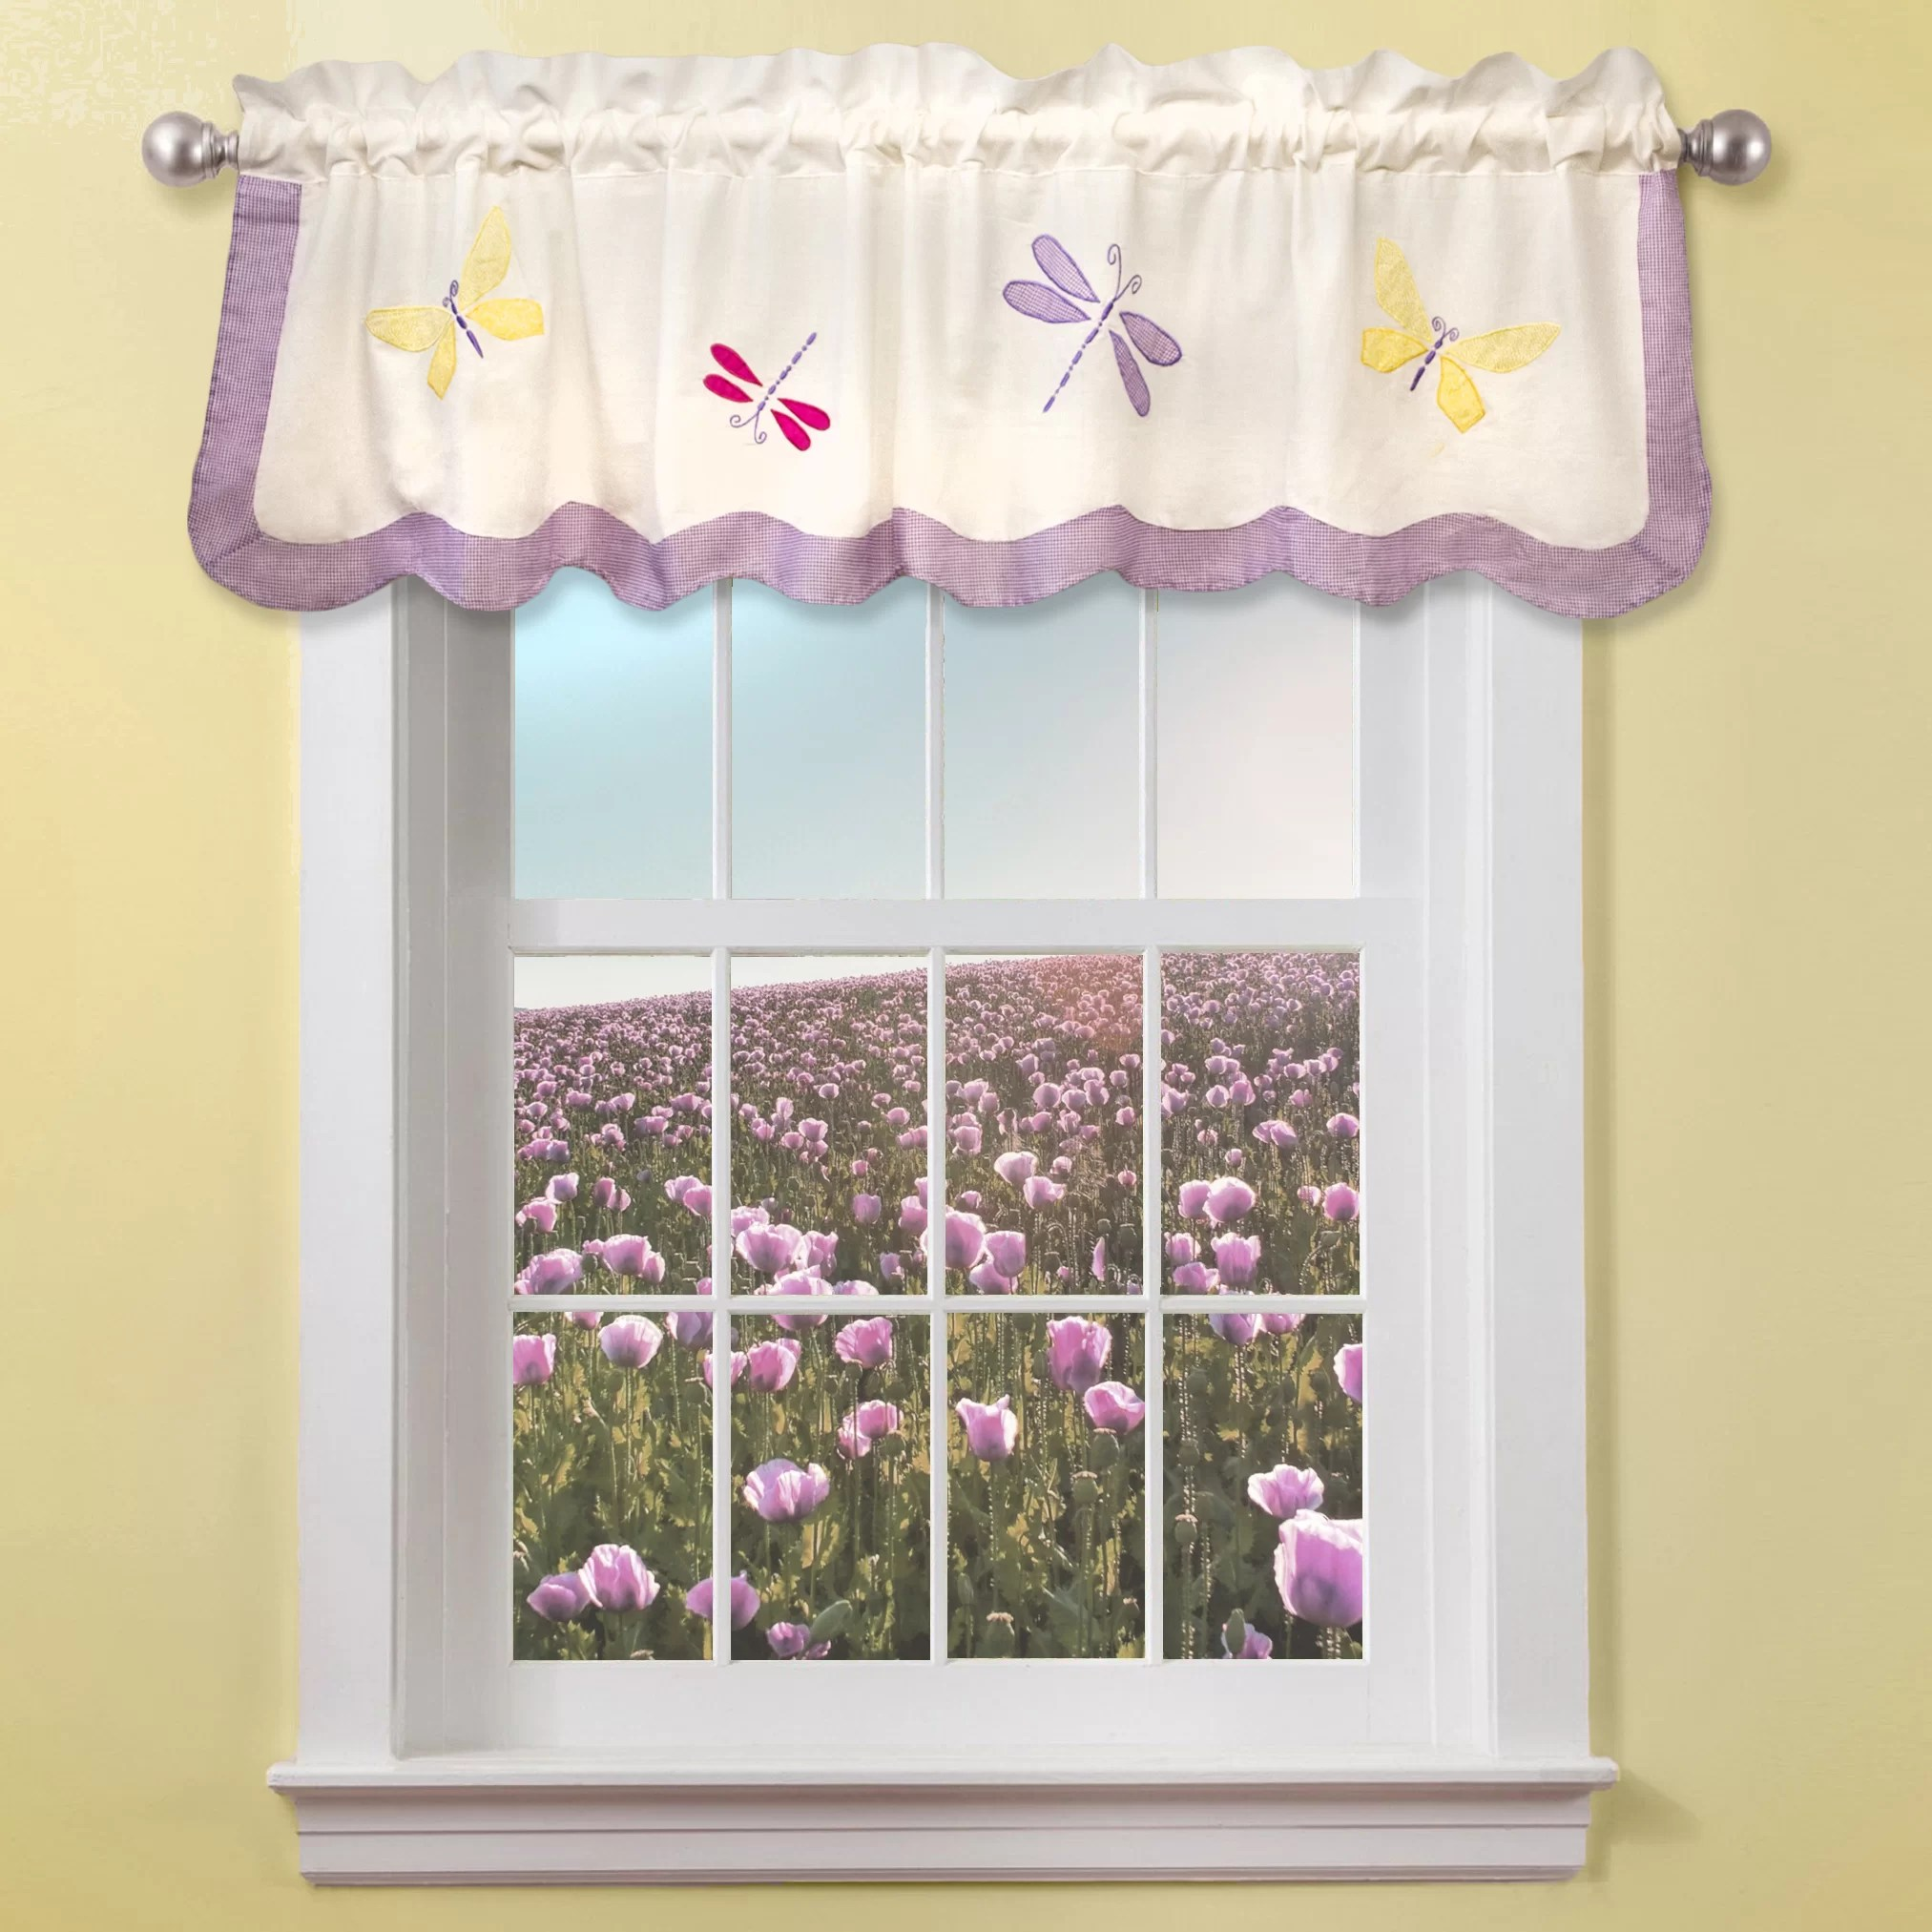 My World Dragonfly Butterfly 70 Curtain Valance Amp Reviews